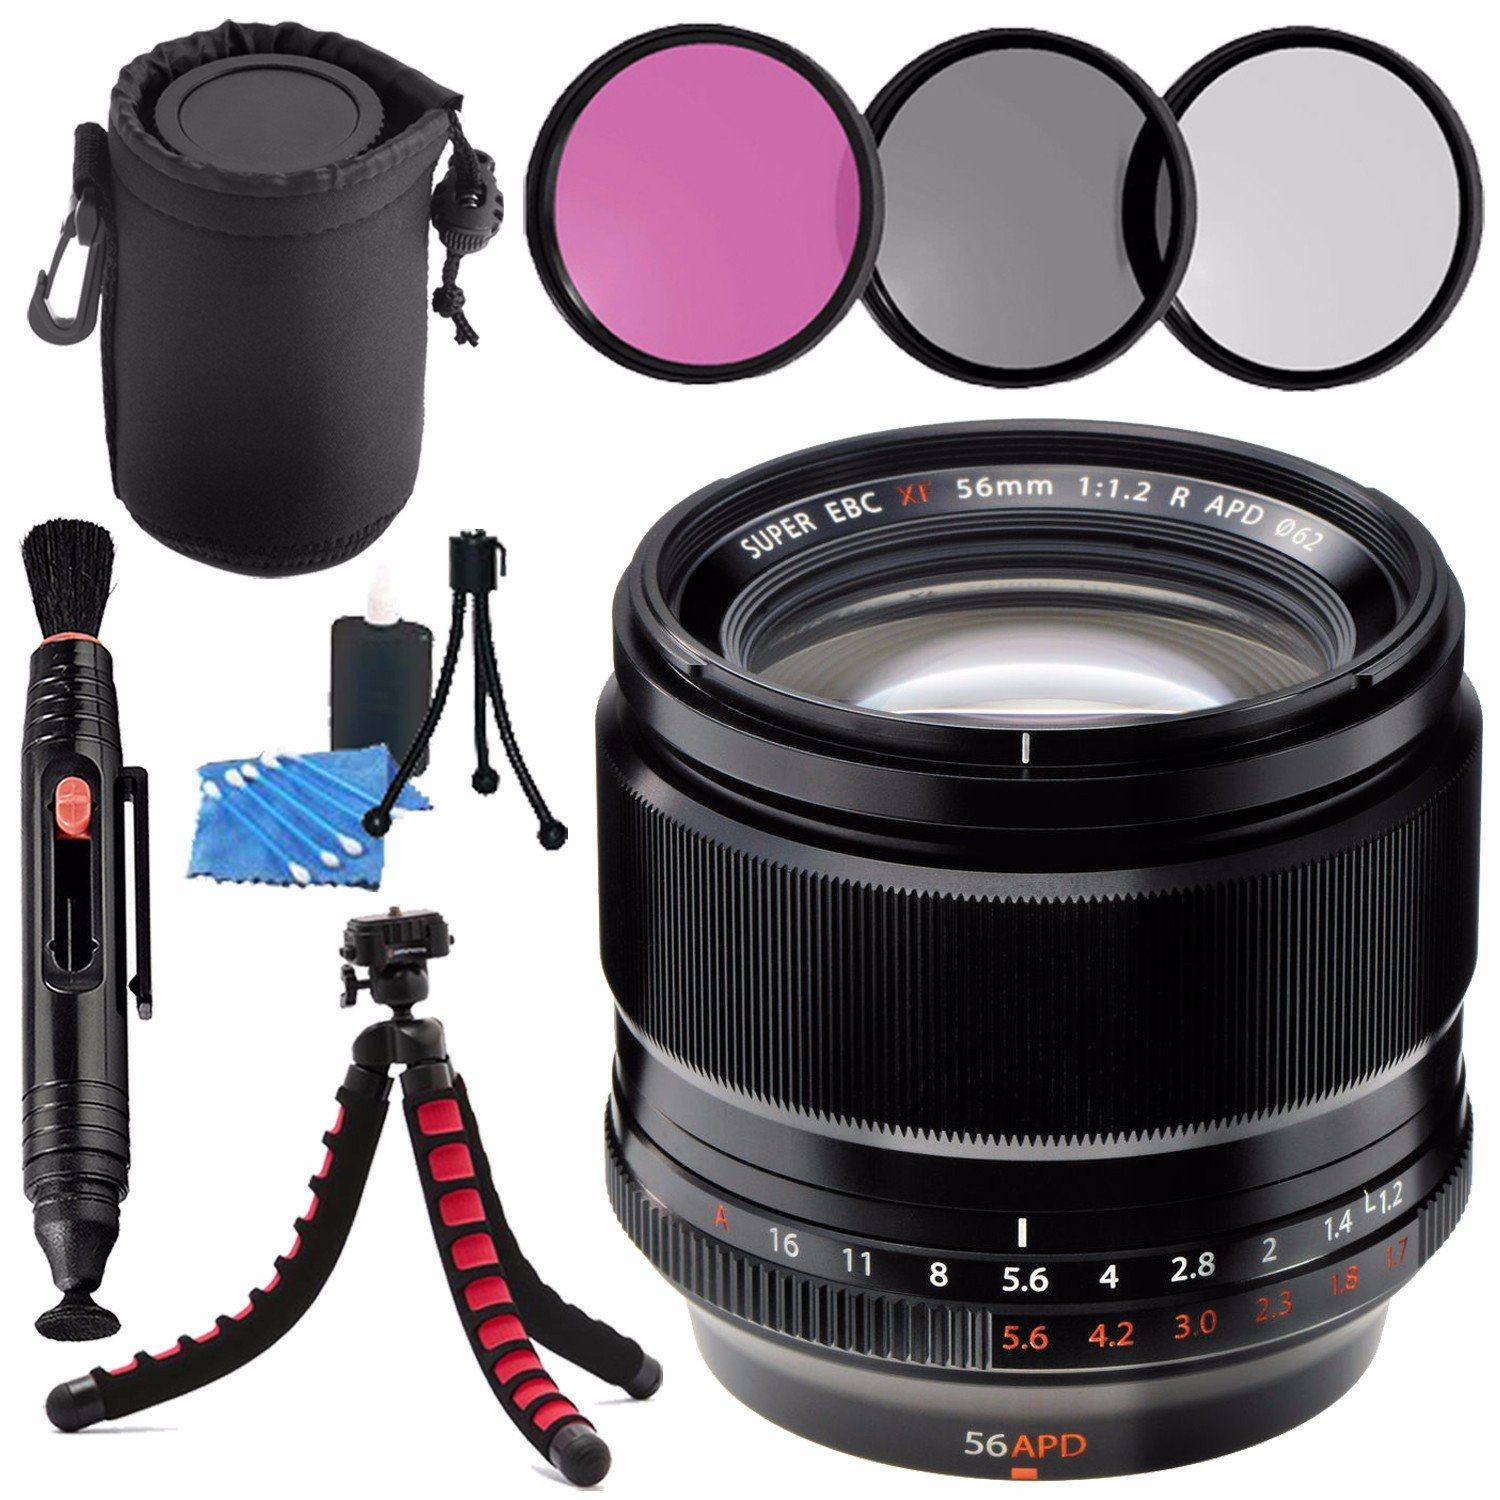 Fujifilm Xf 56mm F 12 R Apd Lens 16443058 62mm 3 Fujinon Xf56mm Piece Filter Kit Cleaning Pouch Pen Cleaner Flexible Tripod